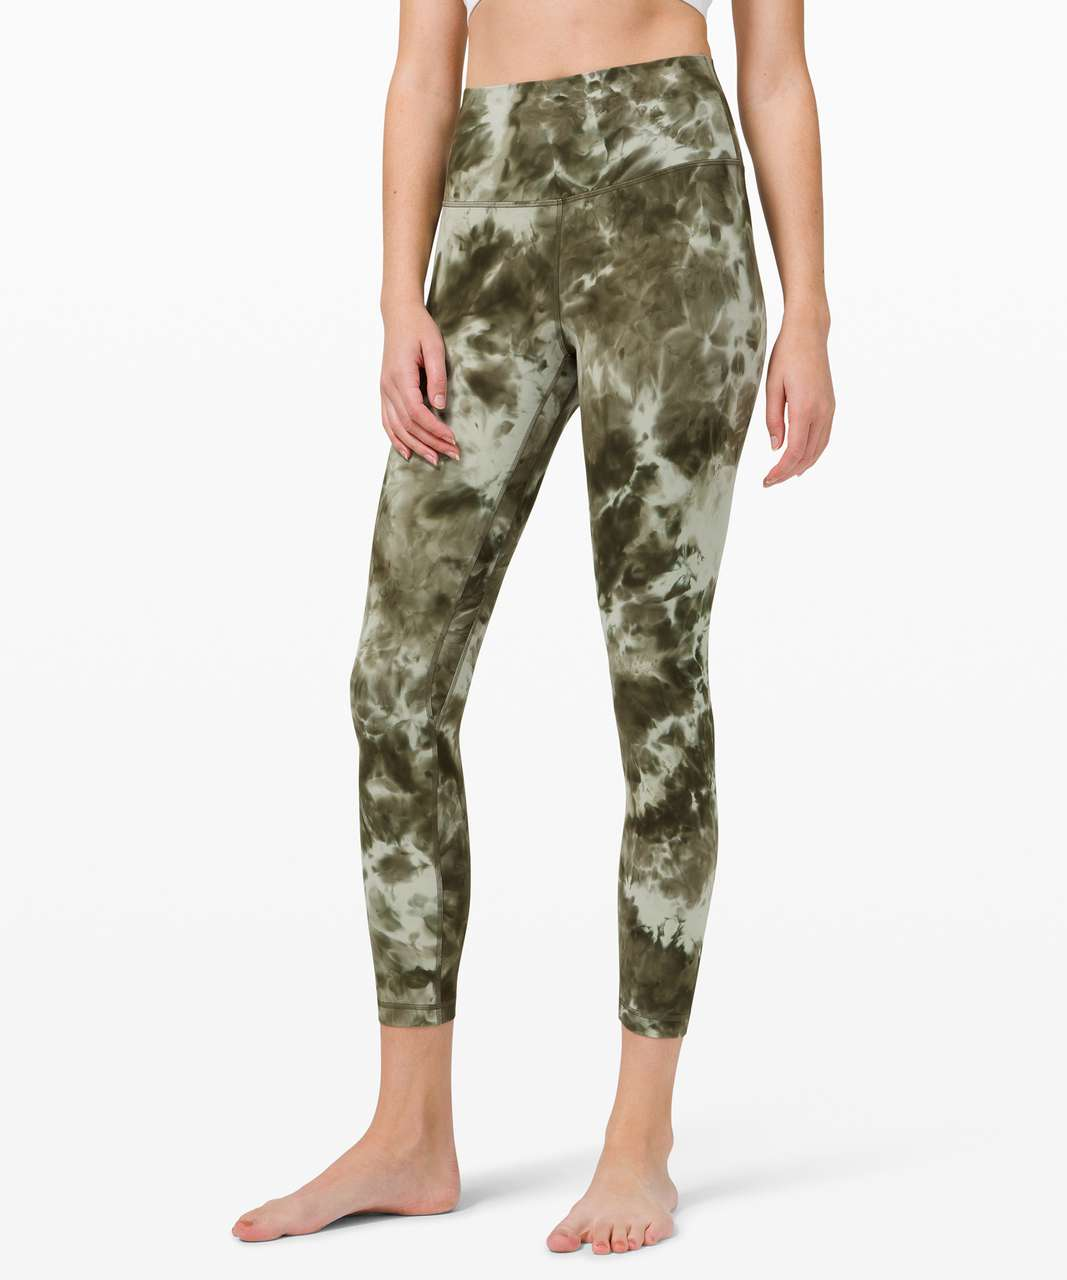 "Lululemon Align Pant 25"" *Diamond Dye - Diamond Dye Light Sage Army Green Dark Olive"